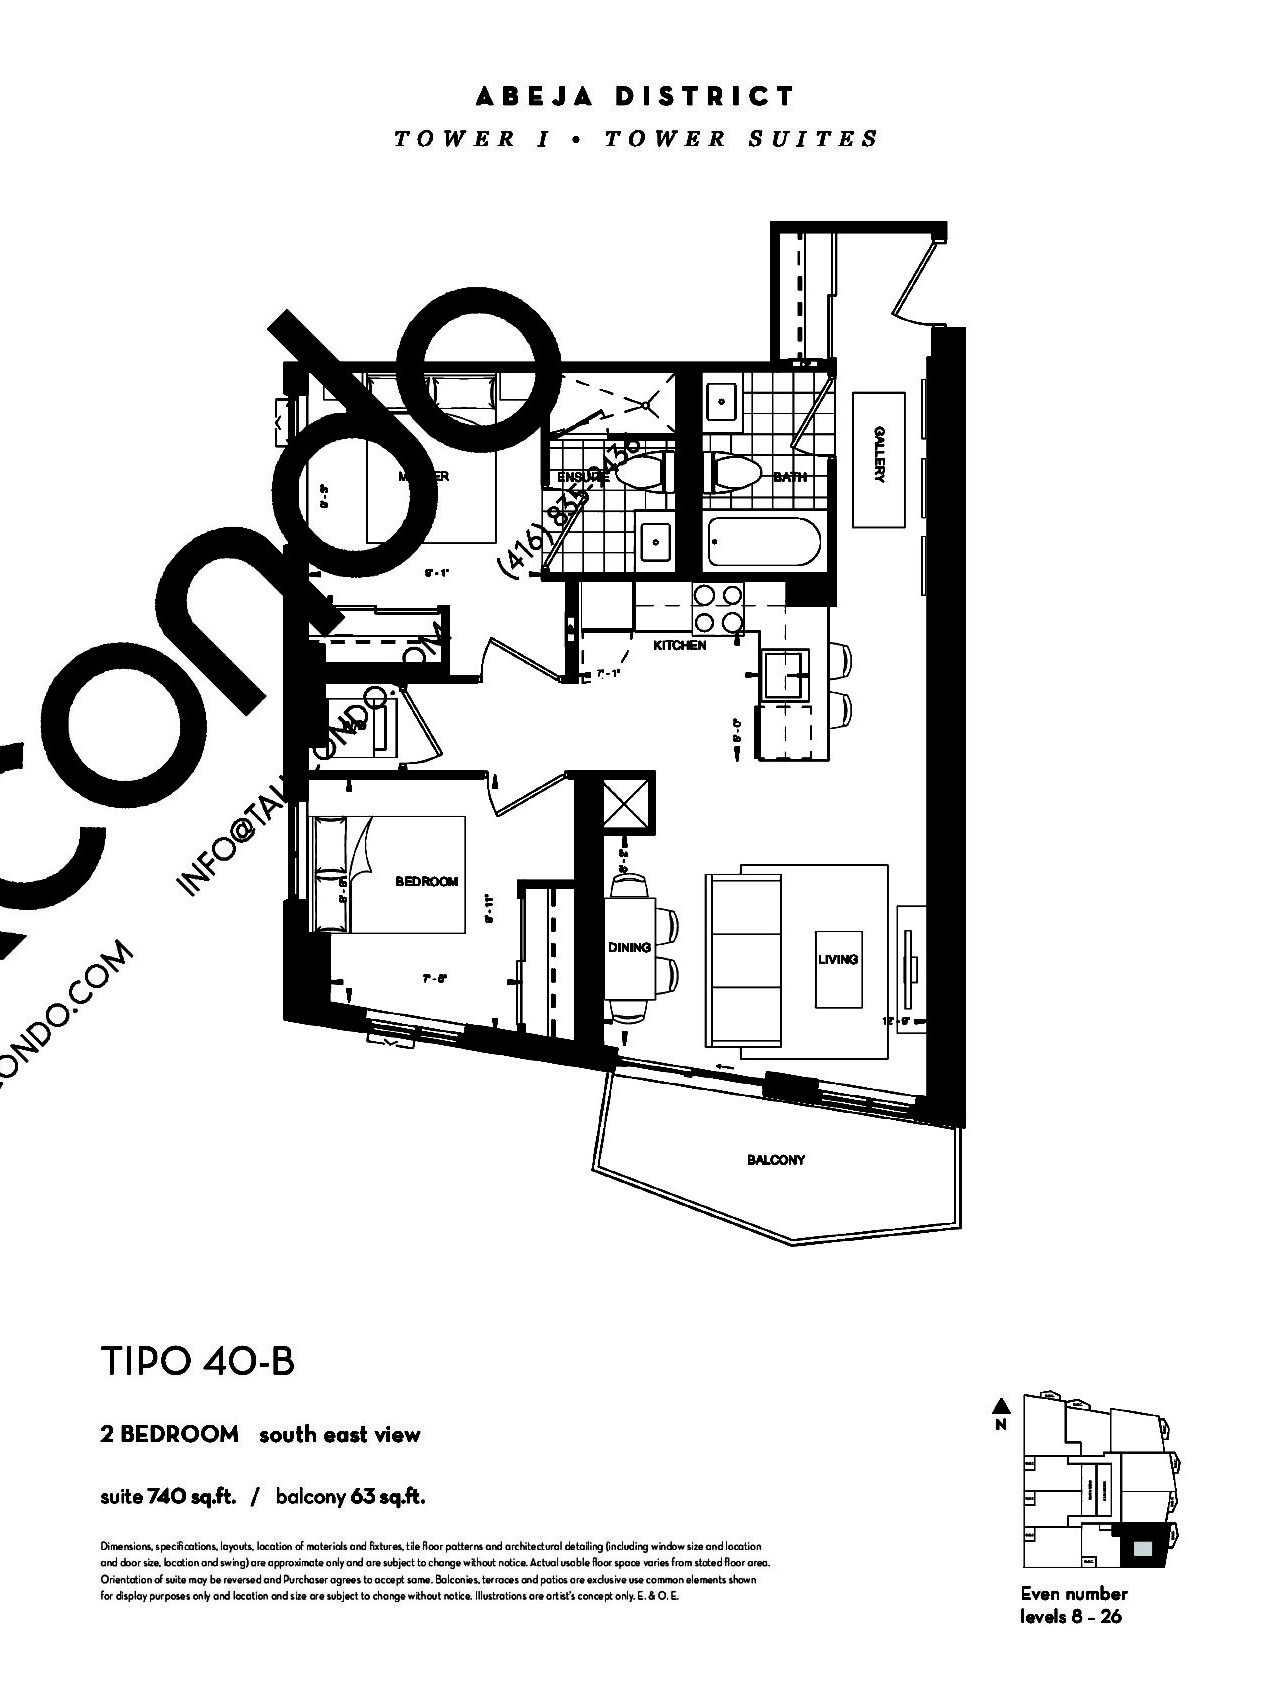 TIPO 40-B (Tower) Floor Plan at Abeja District Condos - 740 sq.ft